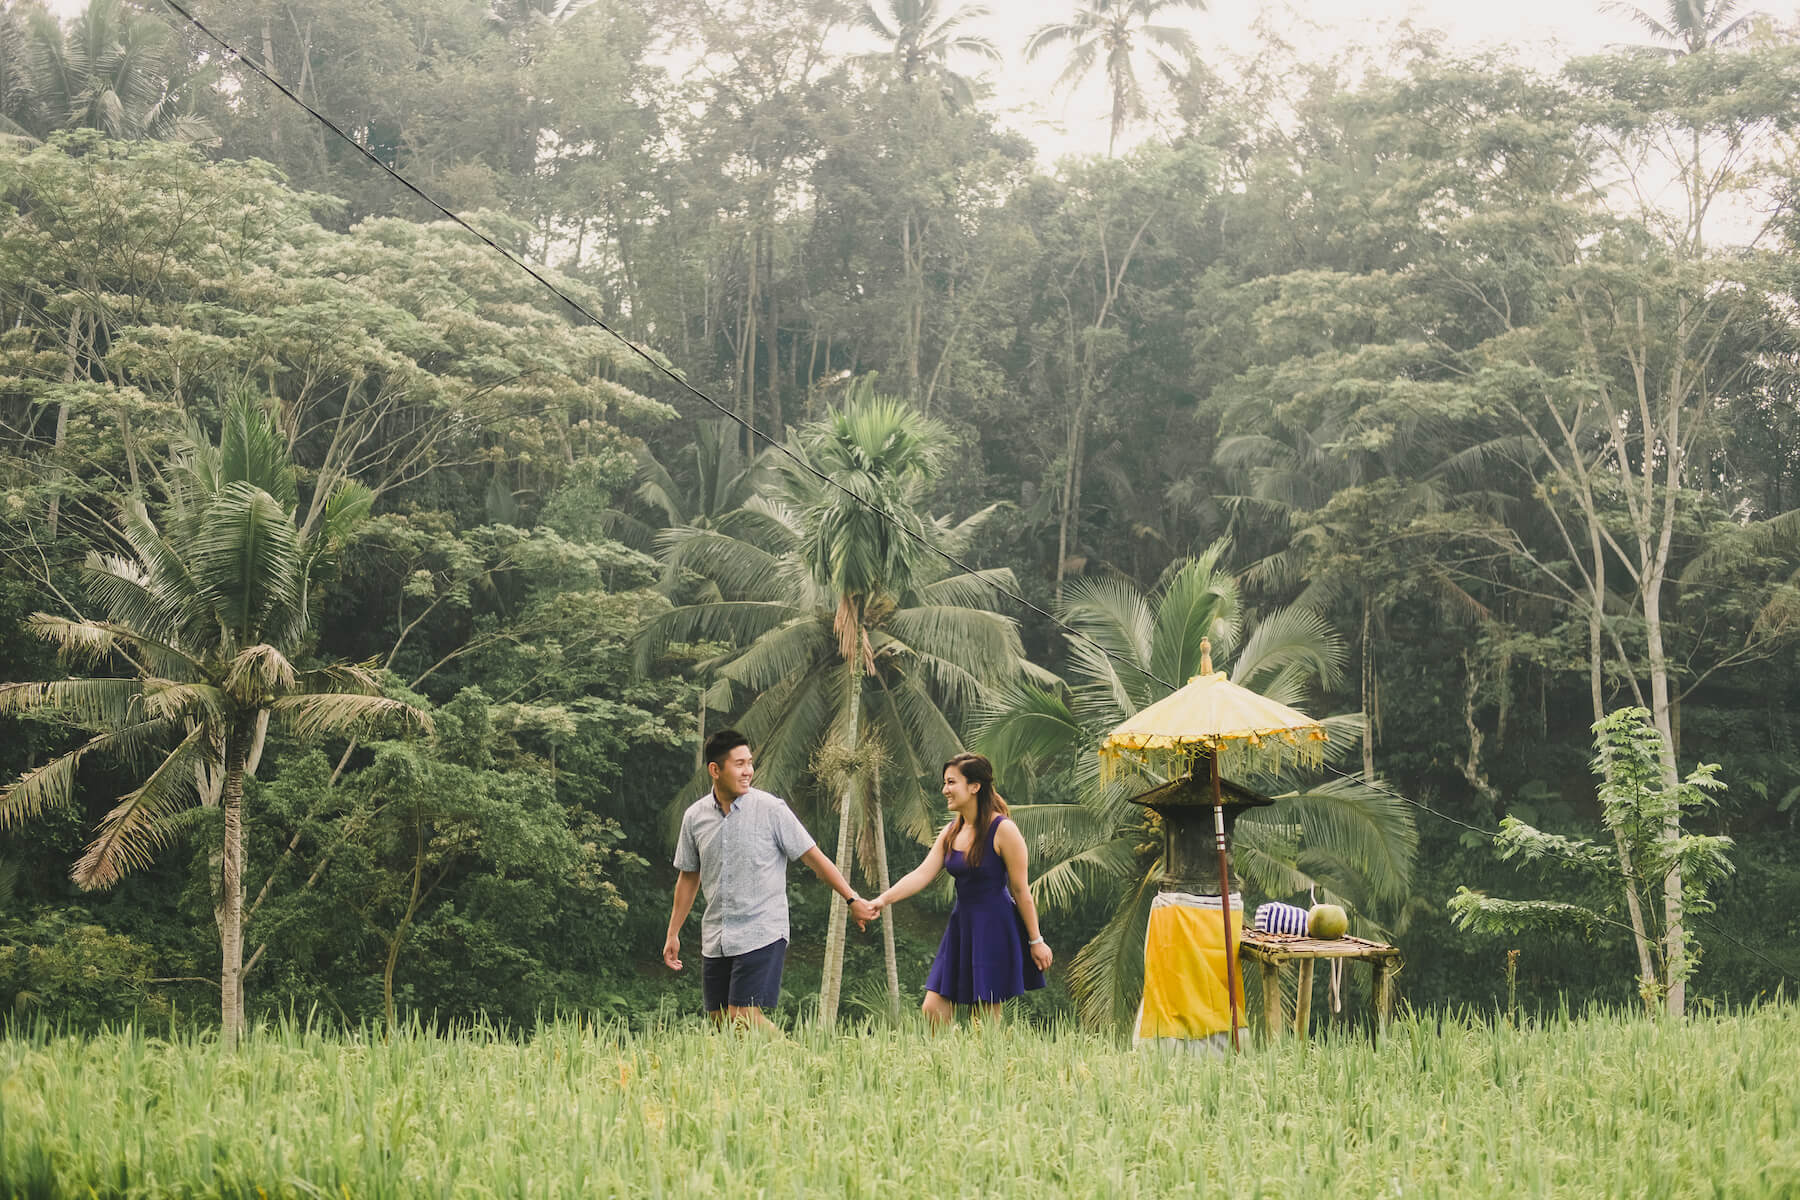 couple holding hands and walking through the jungle in Bali, Indonesia